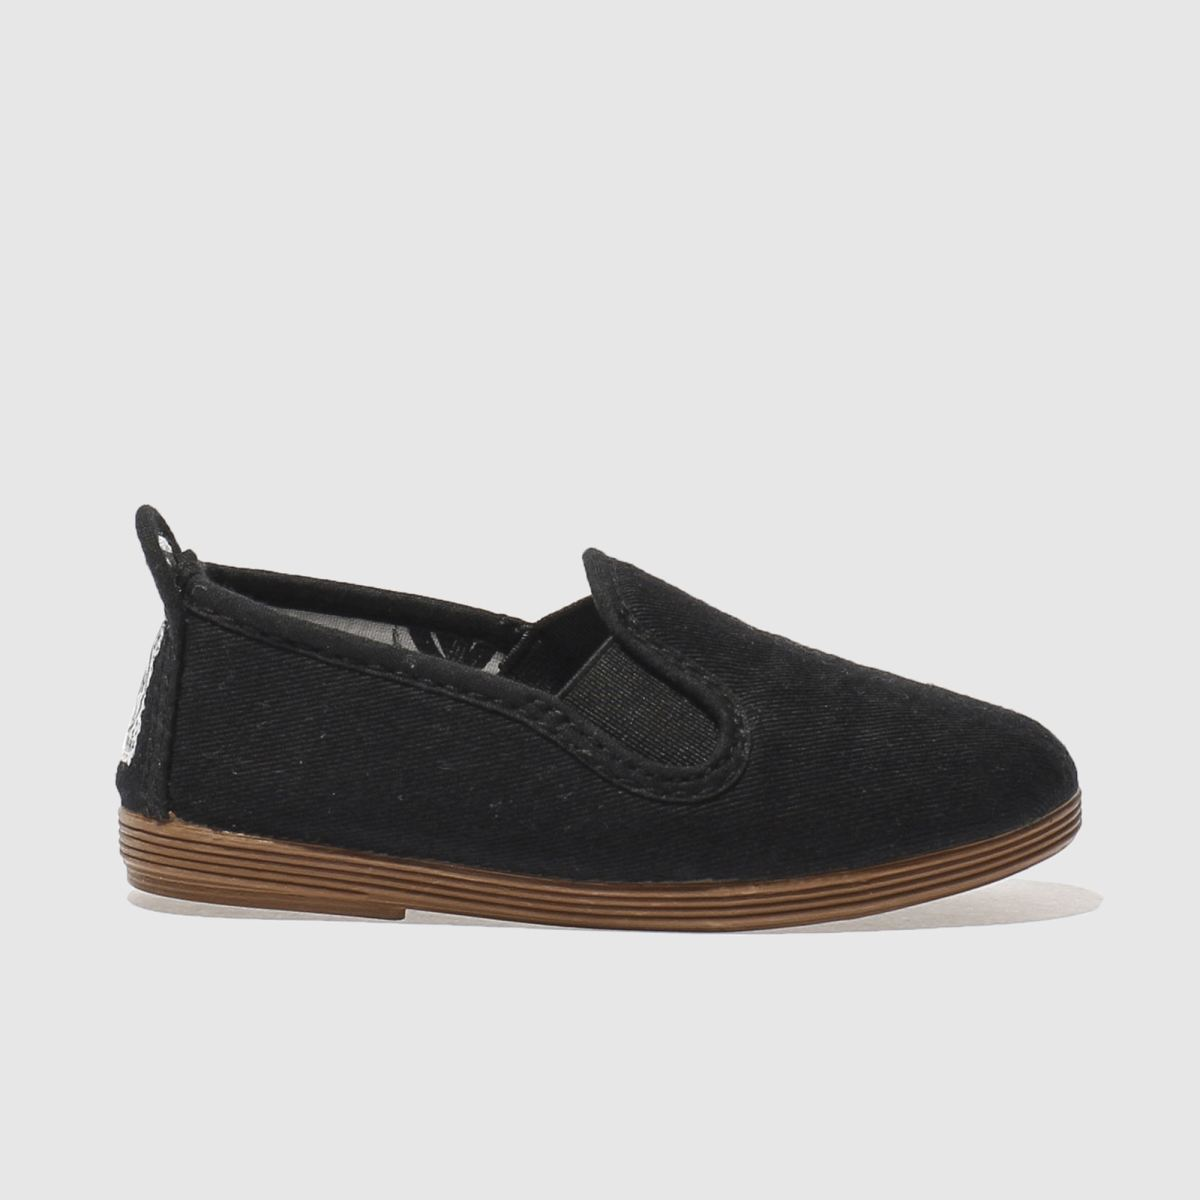 Flossy Flossy Black Pamplona Boys Toddler Shoes